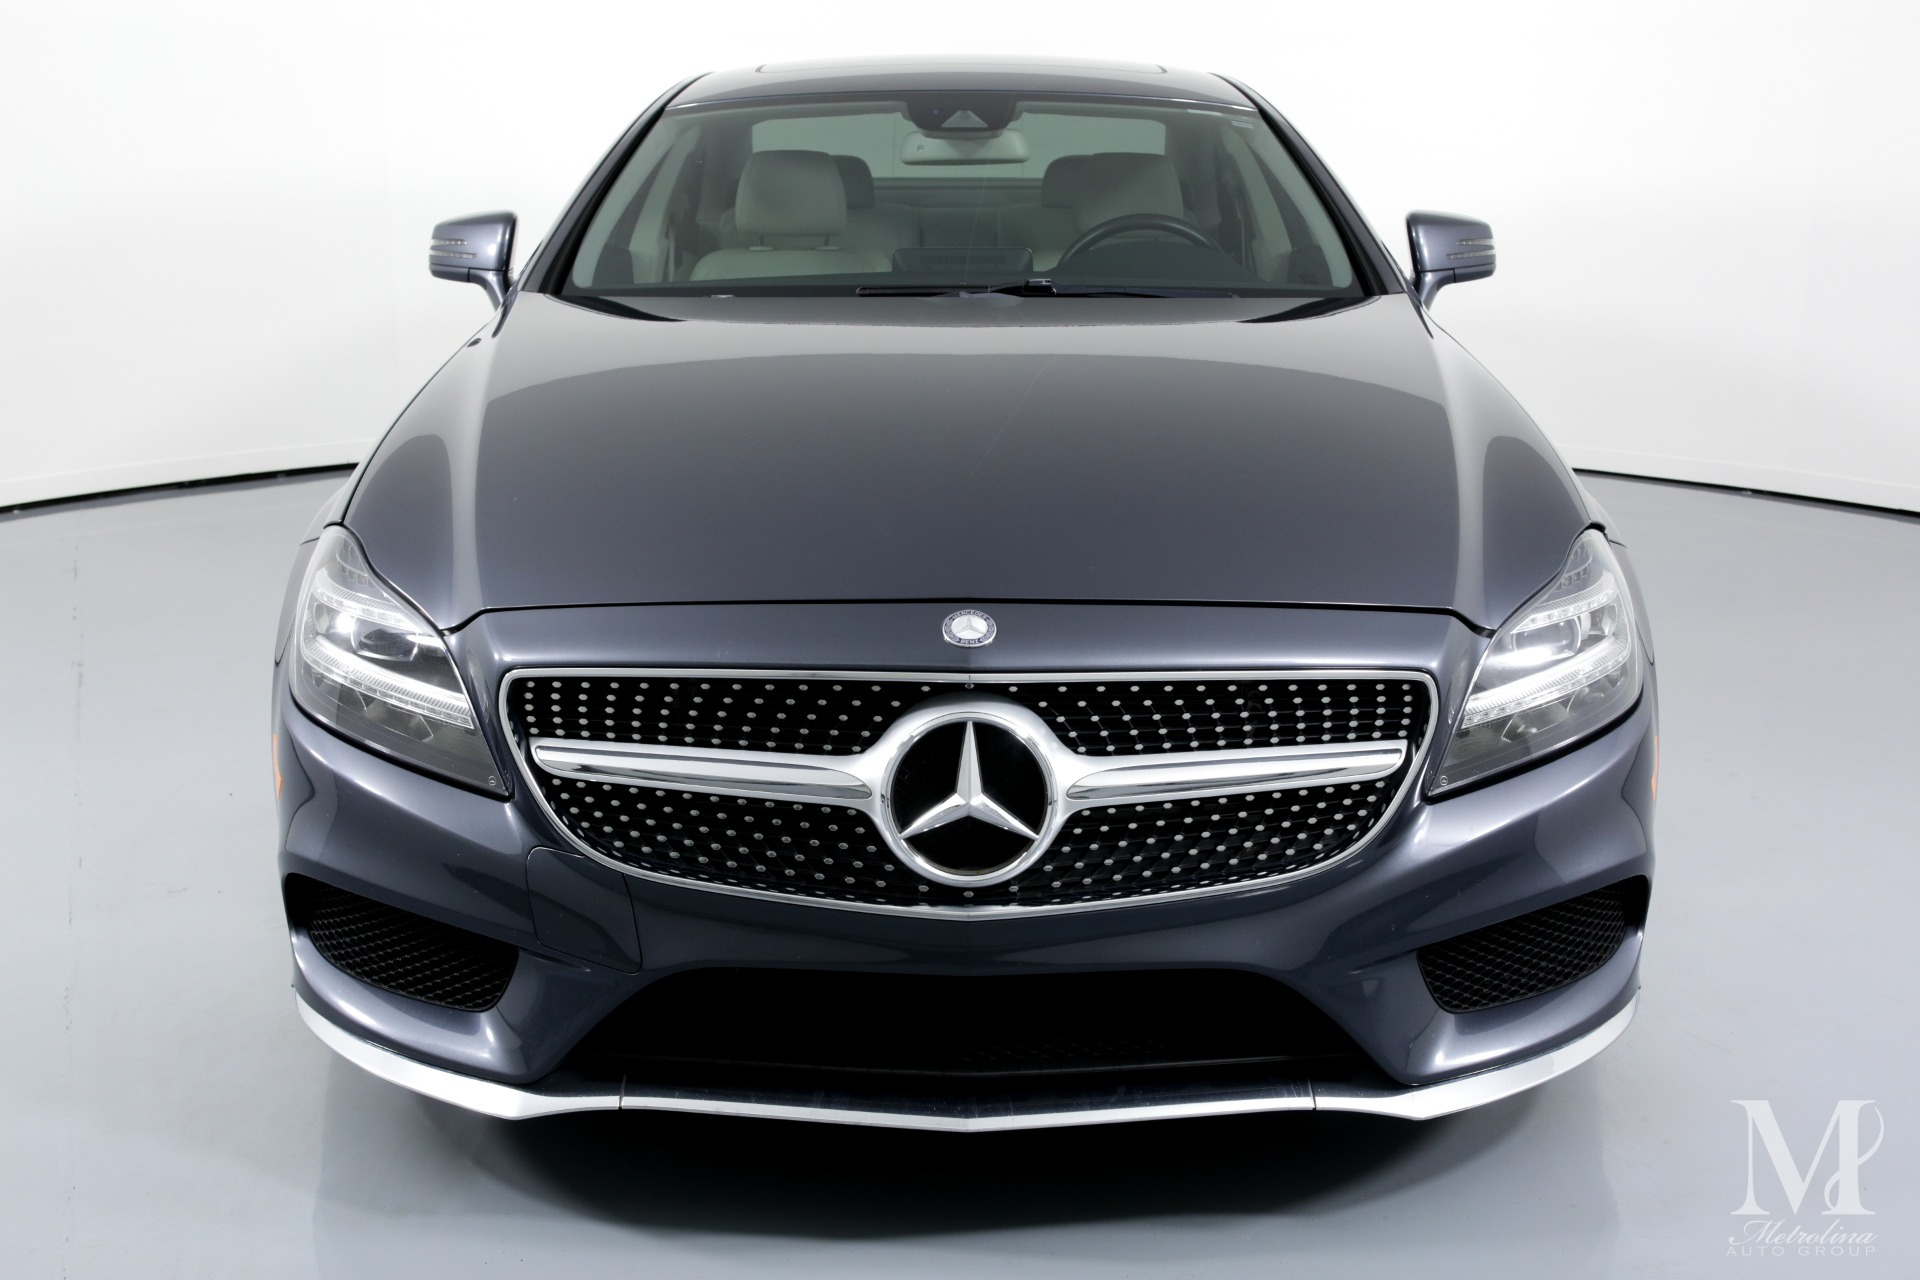 Used 2015 Mercedes-Benz CLS CLS 400 4dr Sedan for sale $29,996 at Metrolina Auto Group in Charlotte NC 28217 - 3